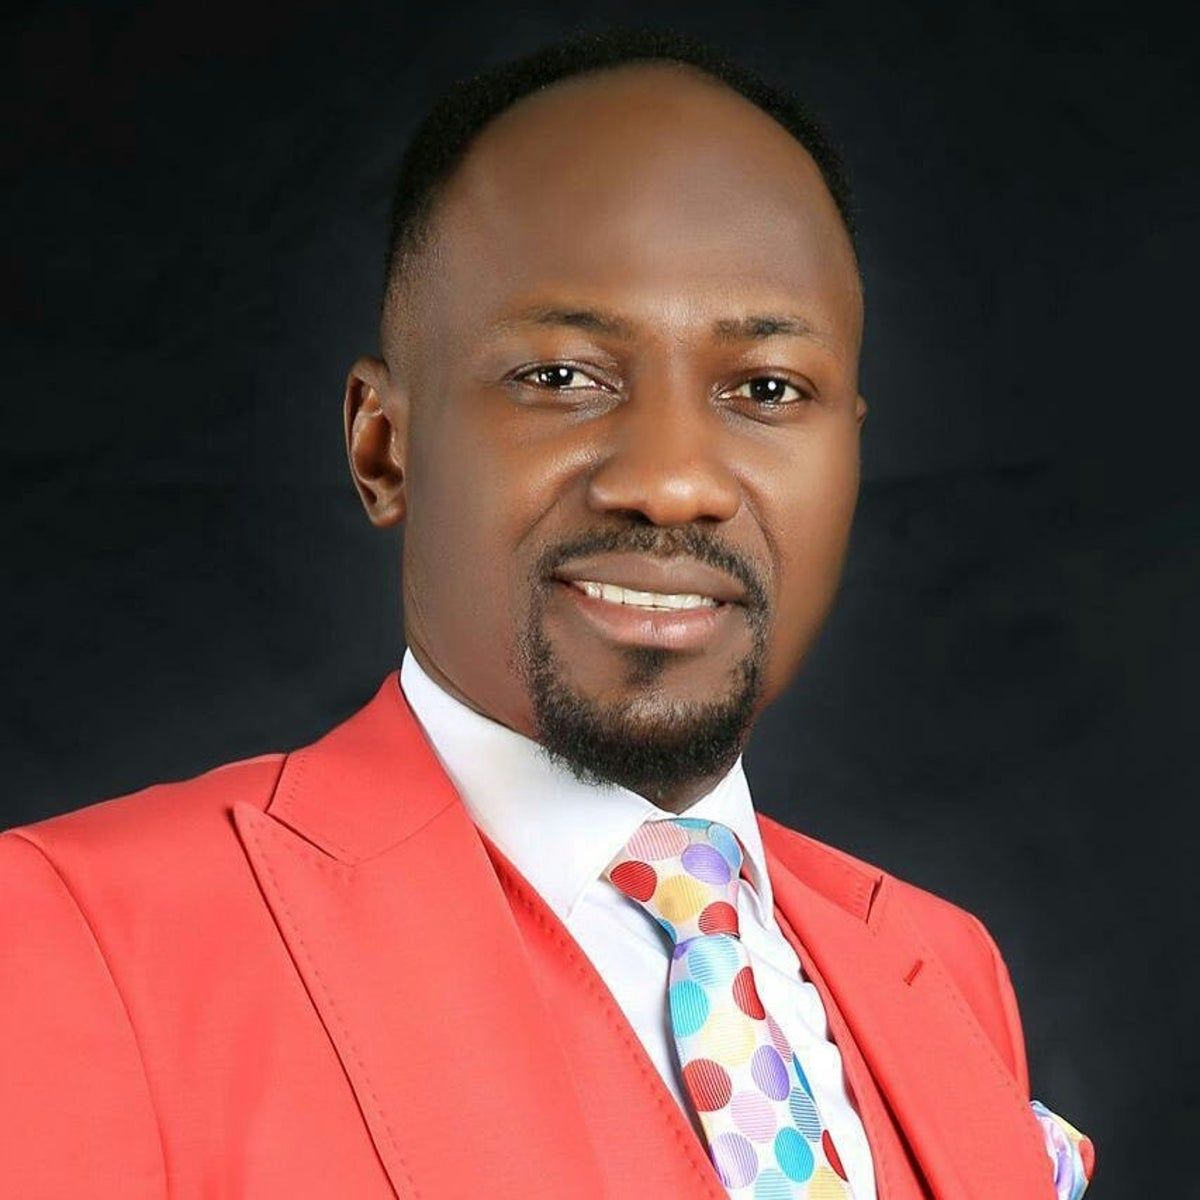 Nigeria news : Apostle Suleman slept with my wife, threatening my life – Pastor Davids alleges